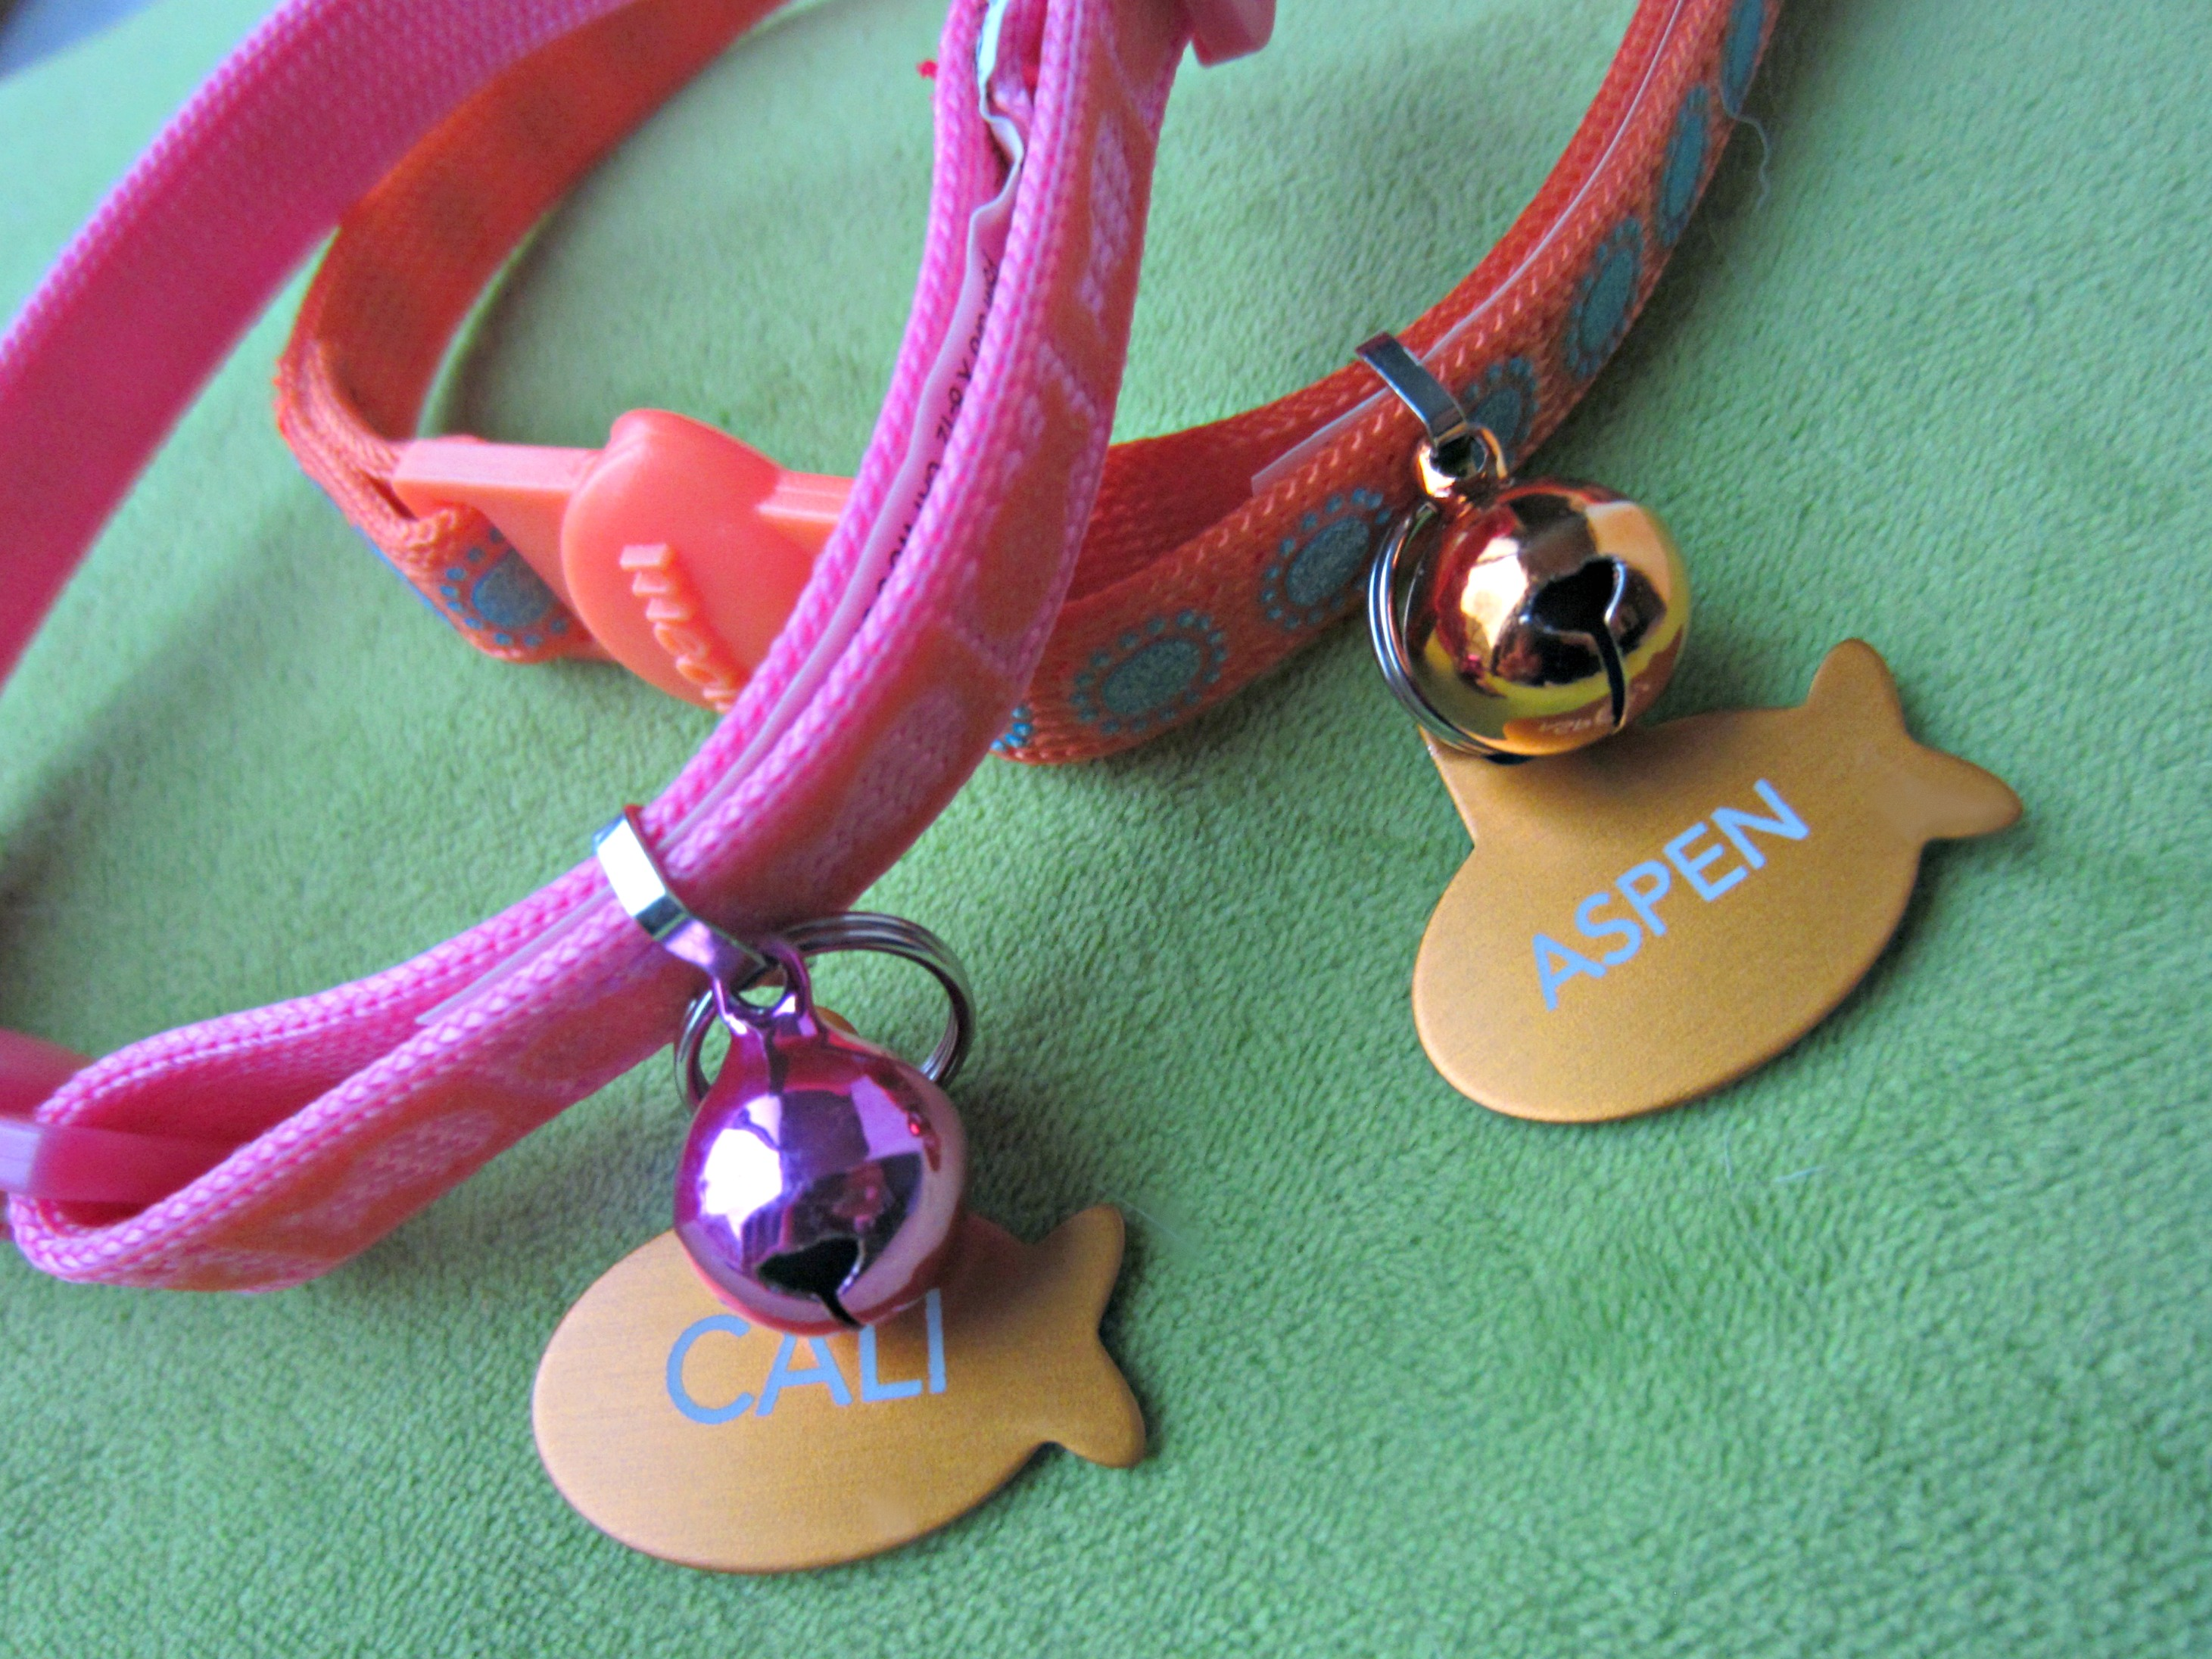 new cat collars for cali and aspen